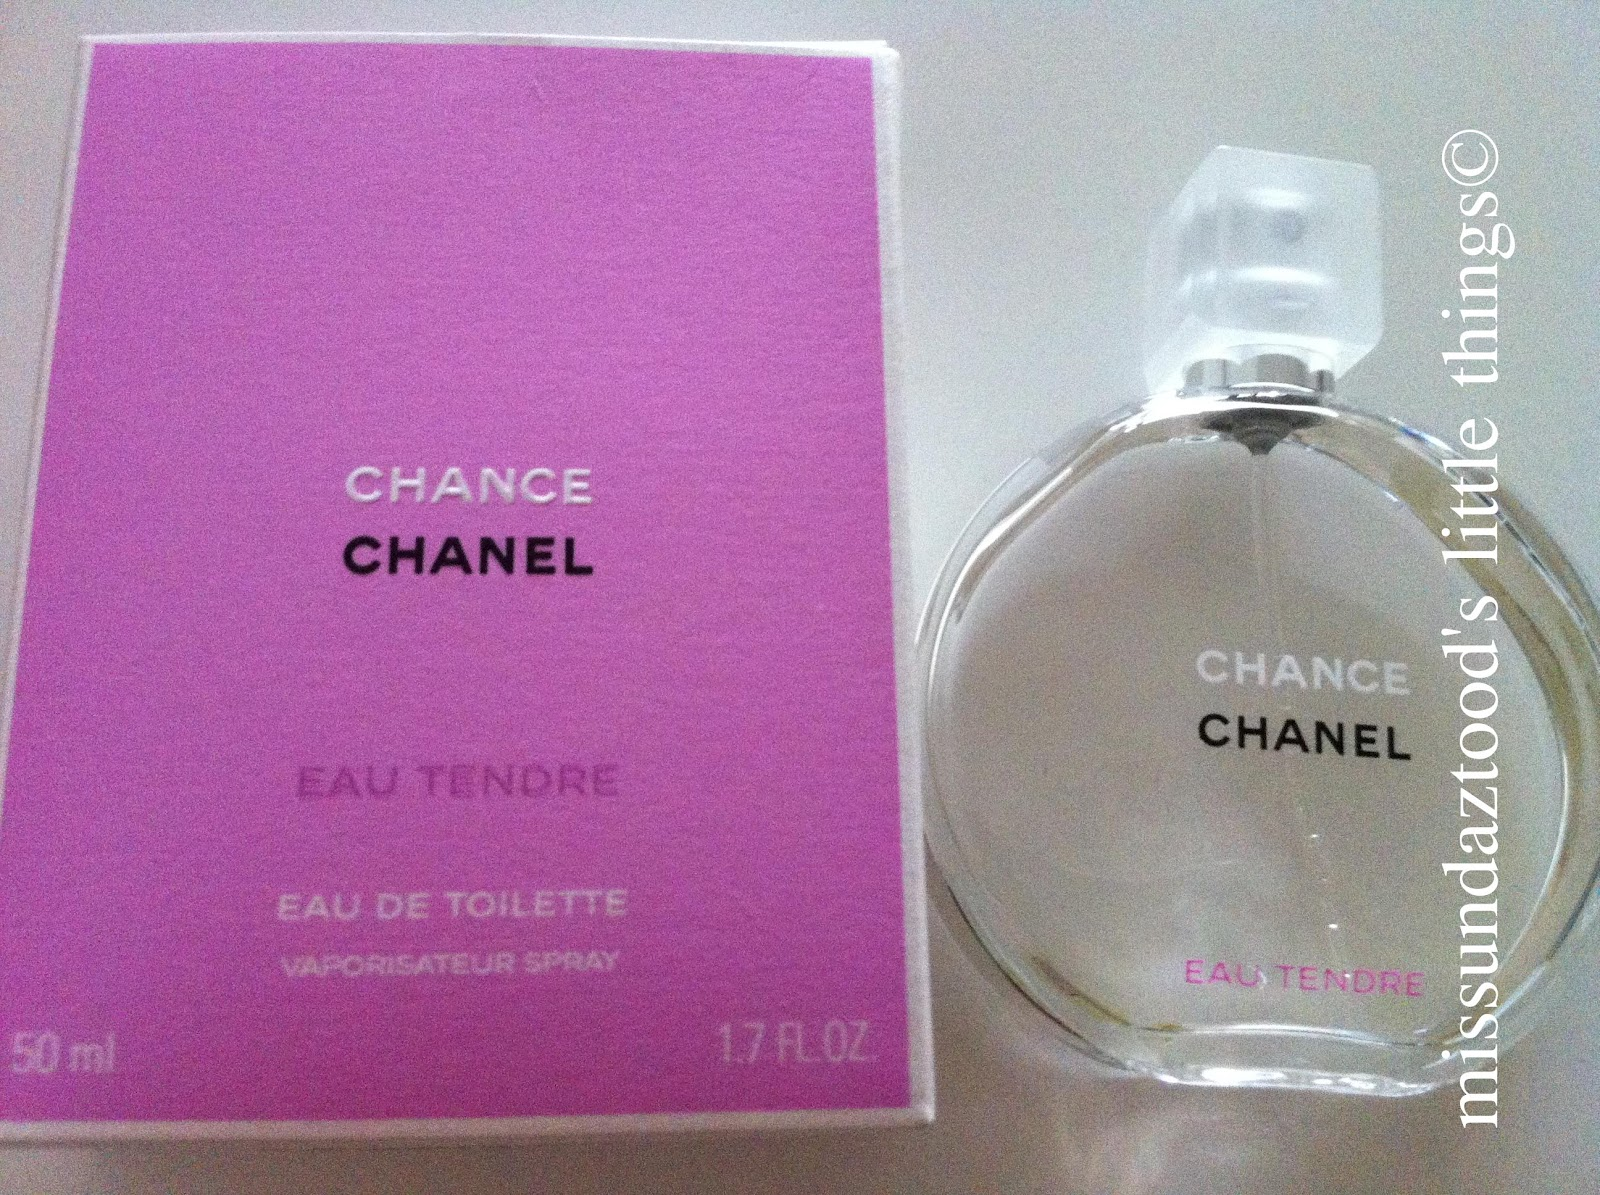 chanel eau tendre. chanel chance eau tendre edt vs. sheer moisture mist